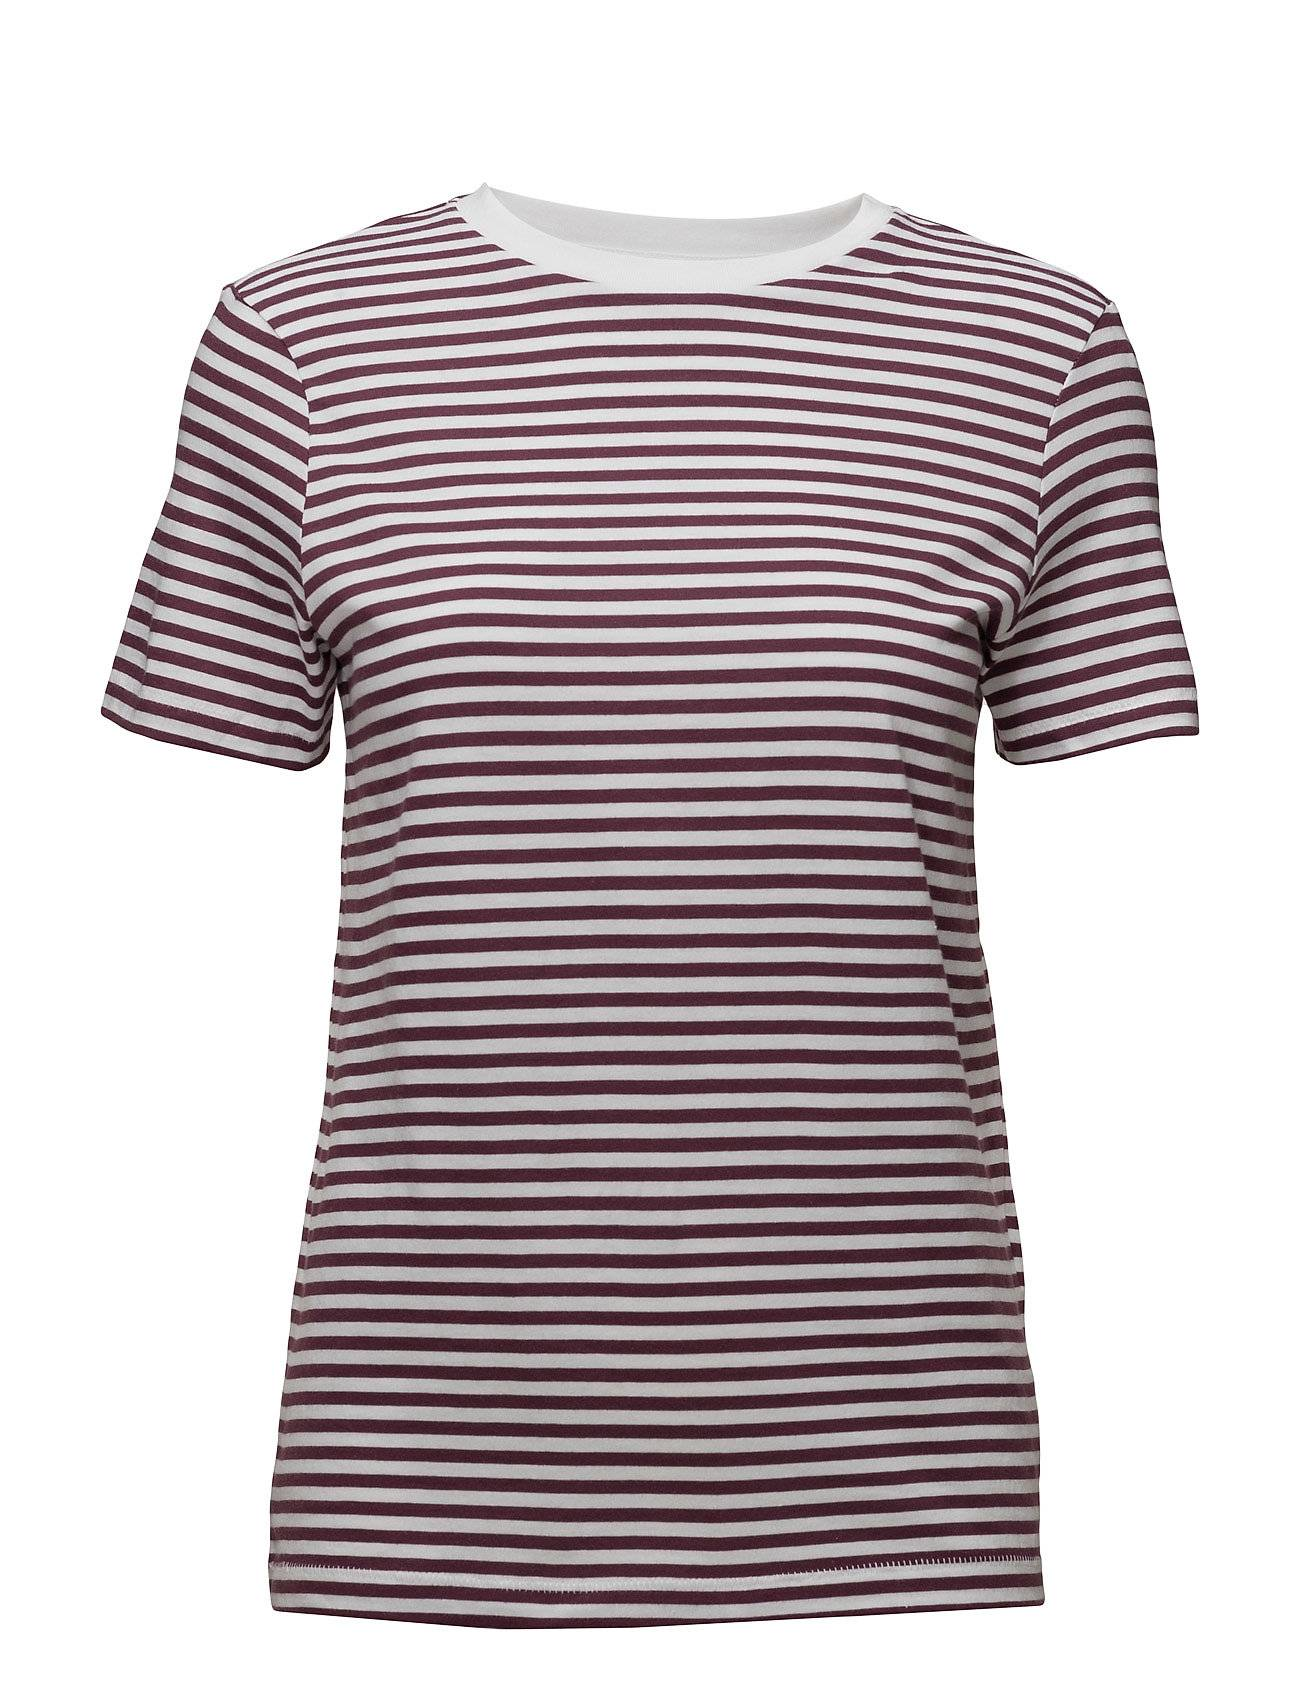 Selected Femme Slfmy Perfect Ss Tee Box Cut-Stri. Noos T-shirts & Tops Short-sleeved Liila Selected Femme